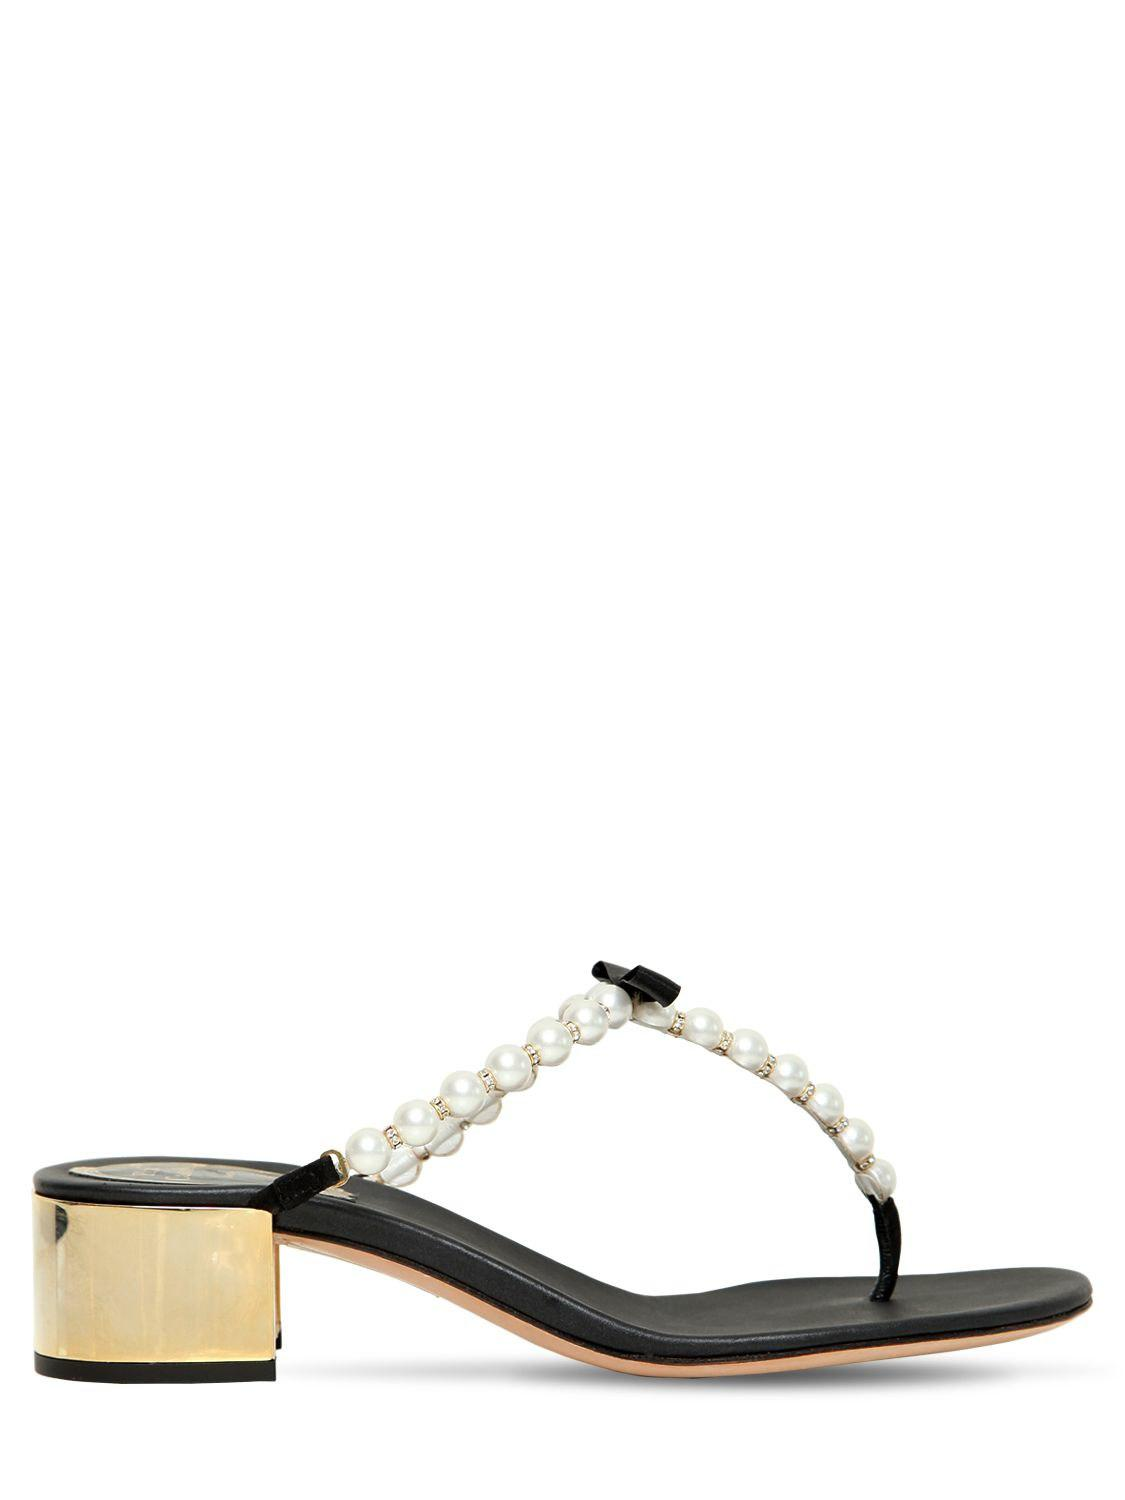 c1289754d Rene Caovilla 40mm Swarovski Imitation Pearl Sandals in Black - Save ...